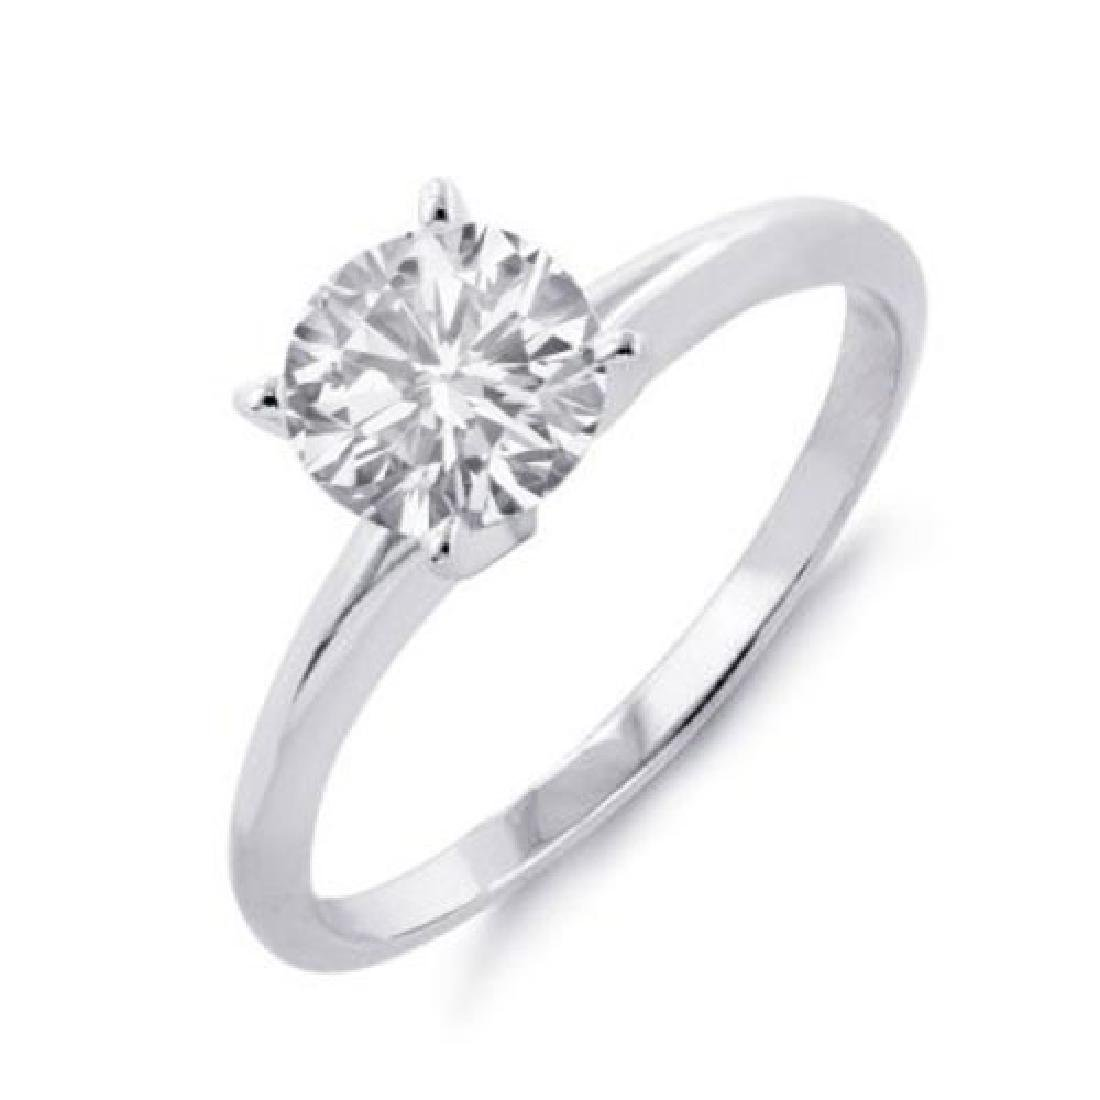 0.50 CTW Certified VS/SI Diamond Solitaire Ring 14K